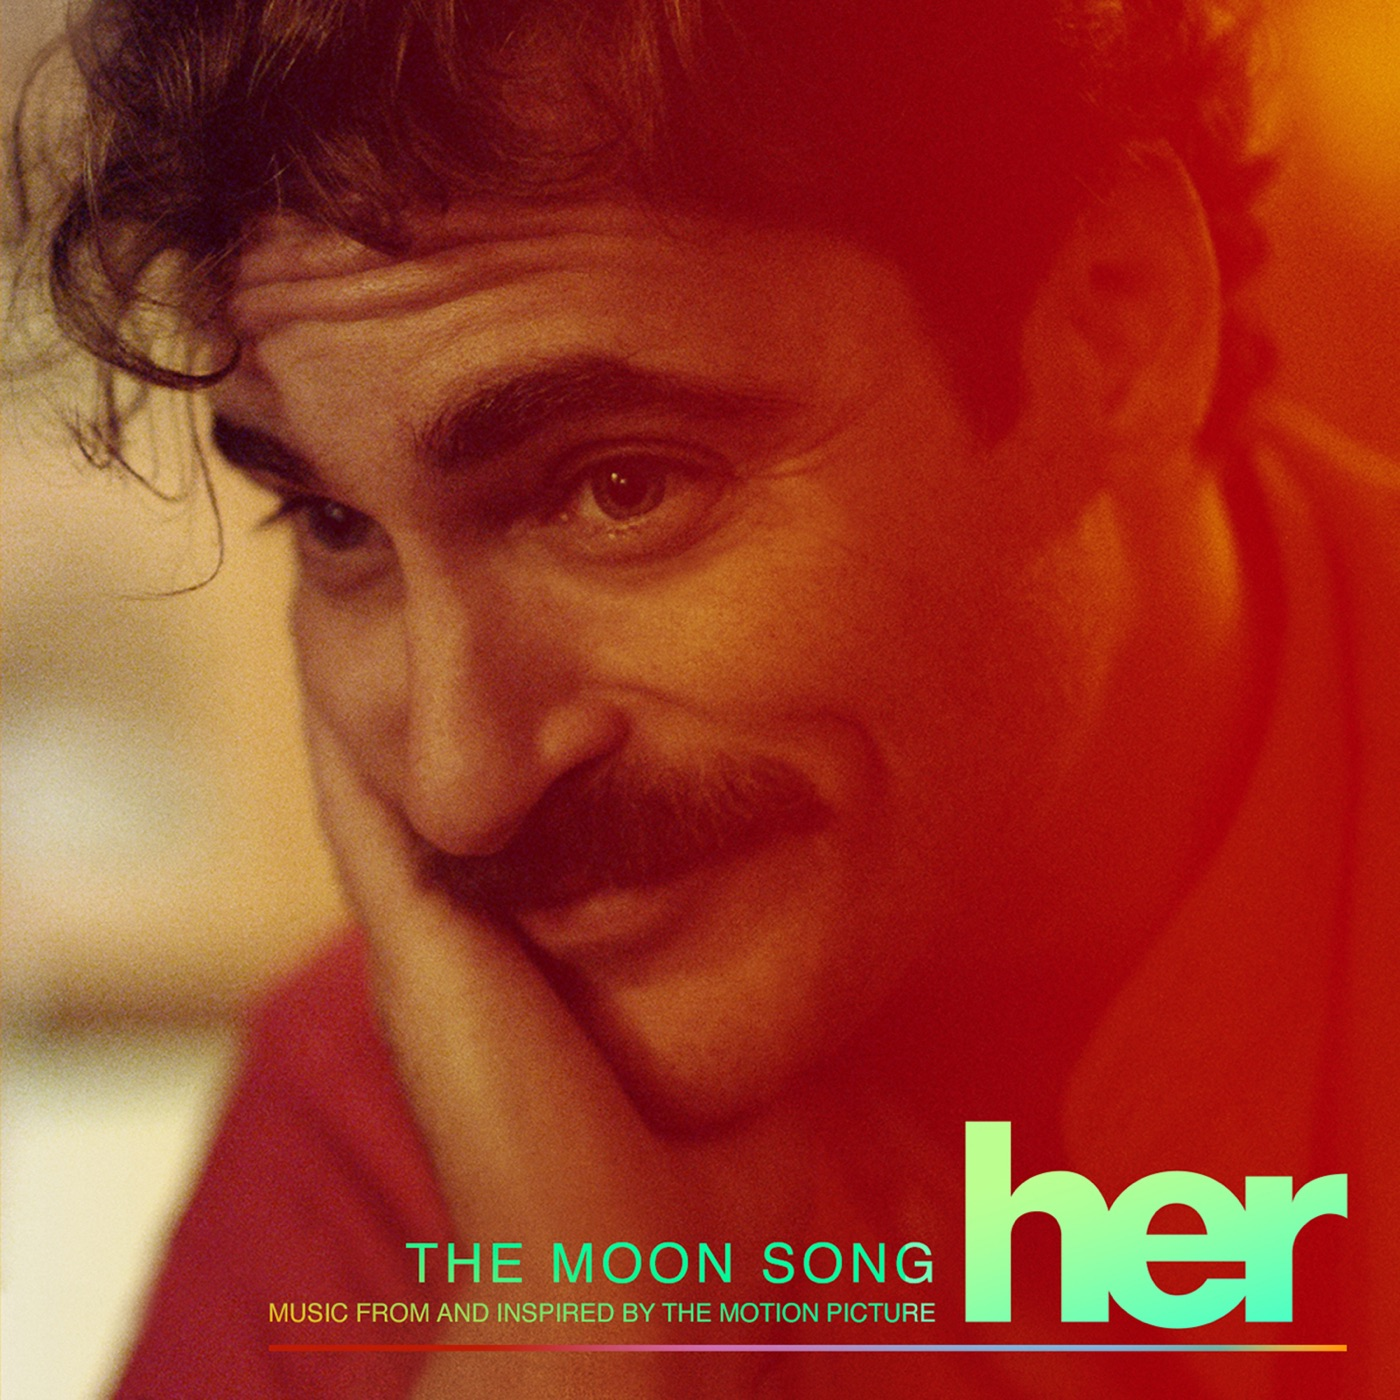 群星 - The Moon Song (Music From and Inspired By the Motion Picture Her) - Single